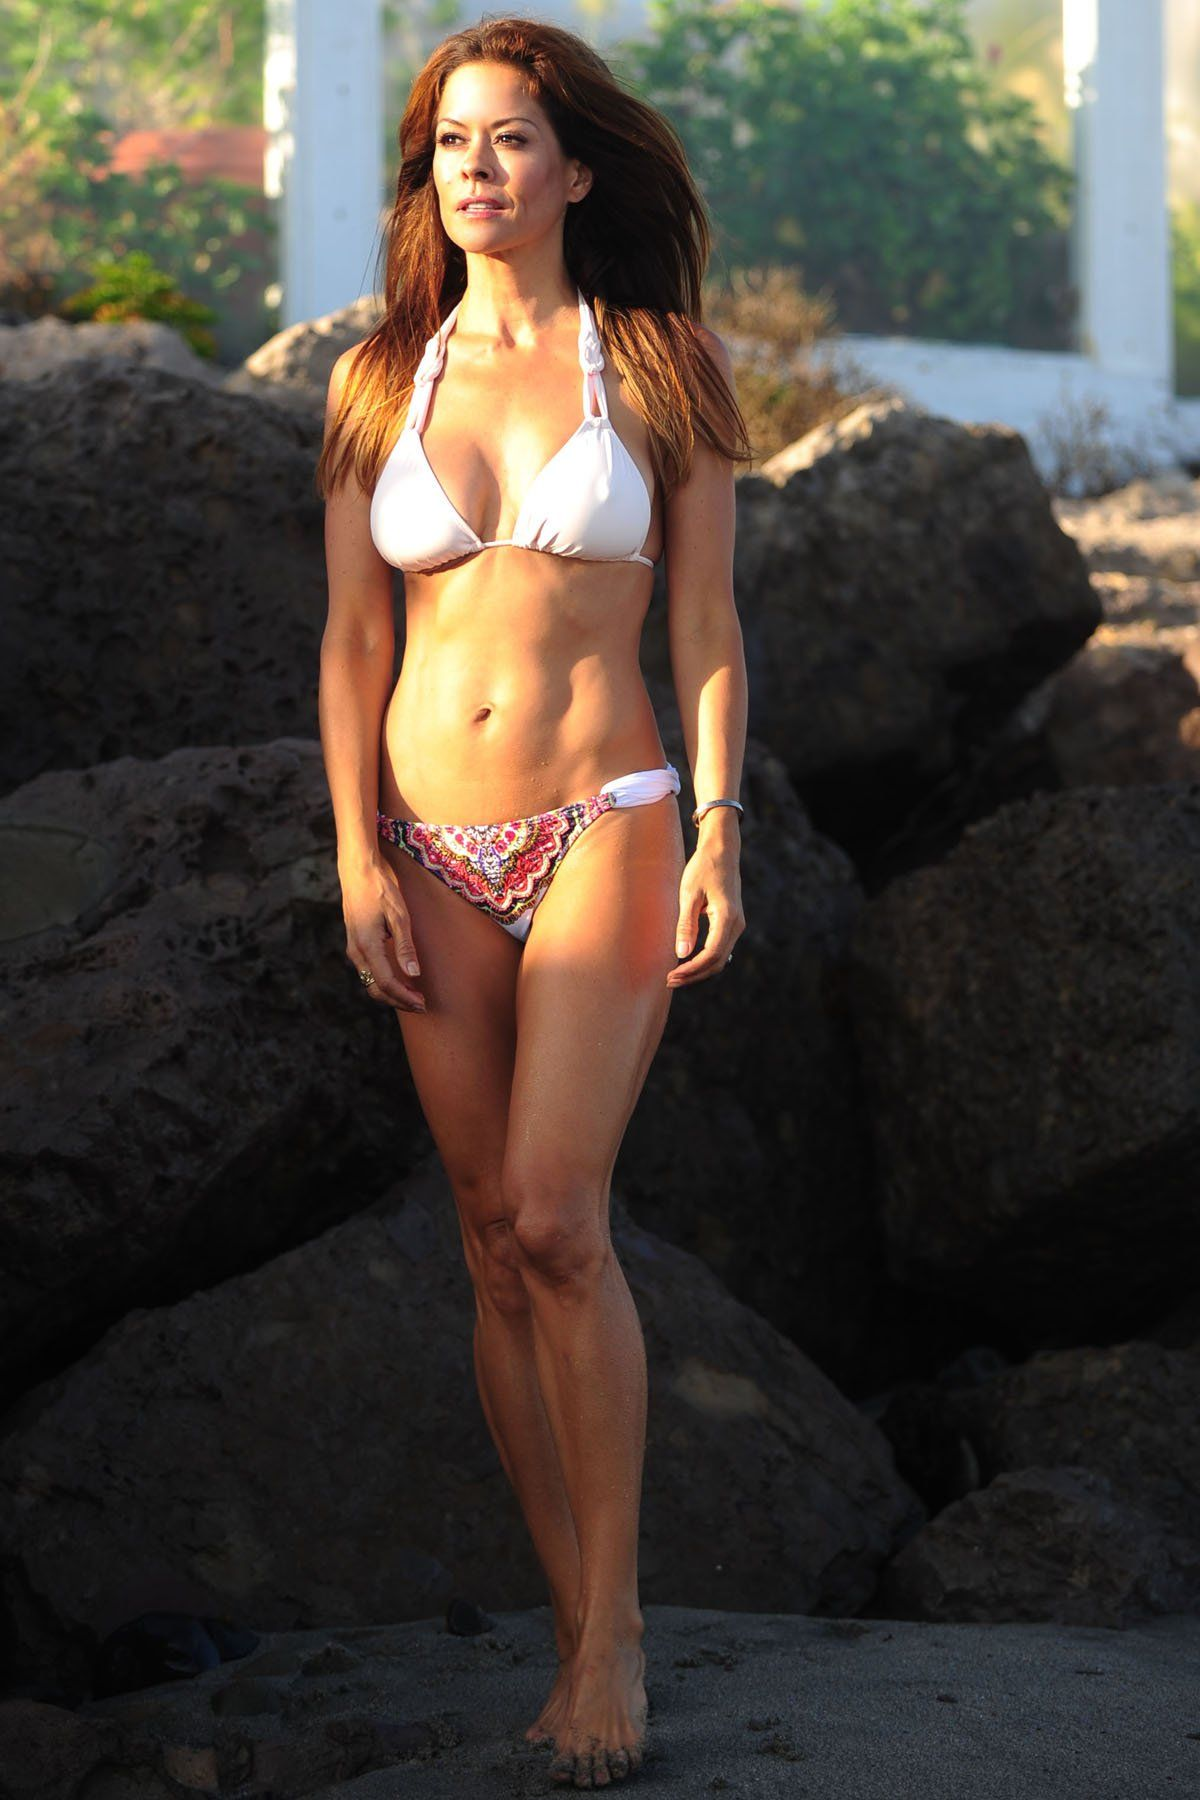 Free nude brooke burke right! seems very